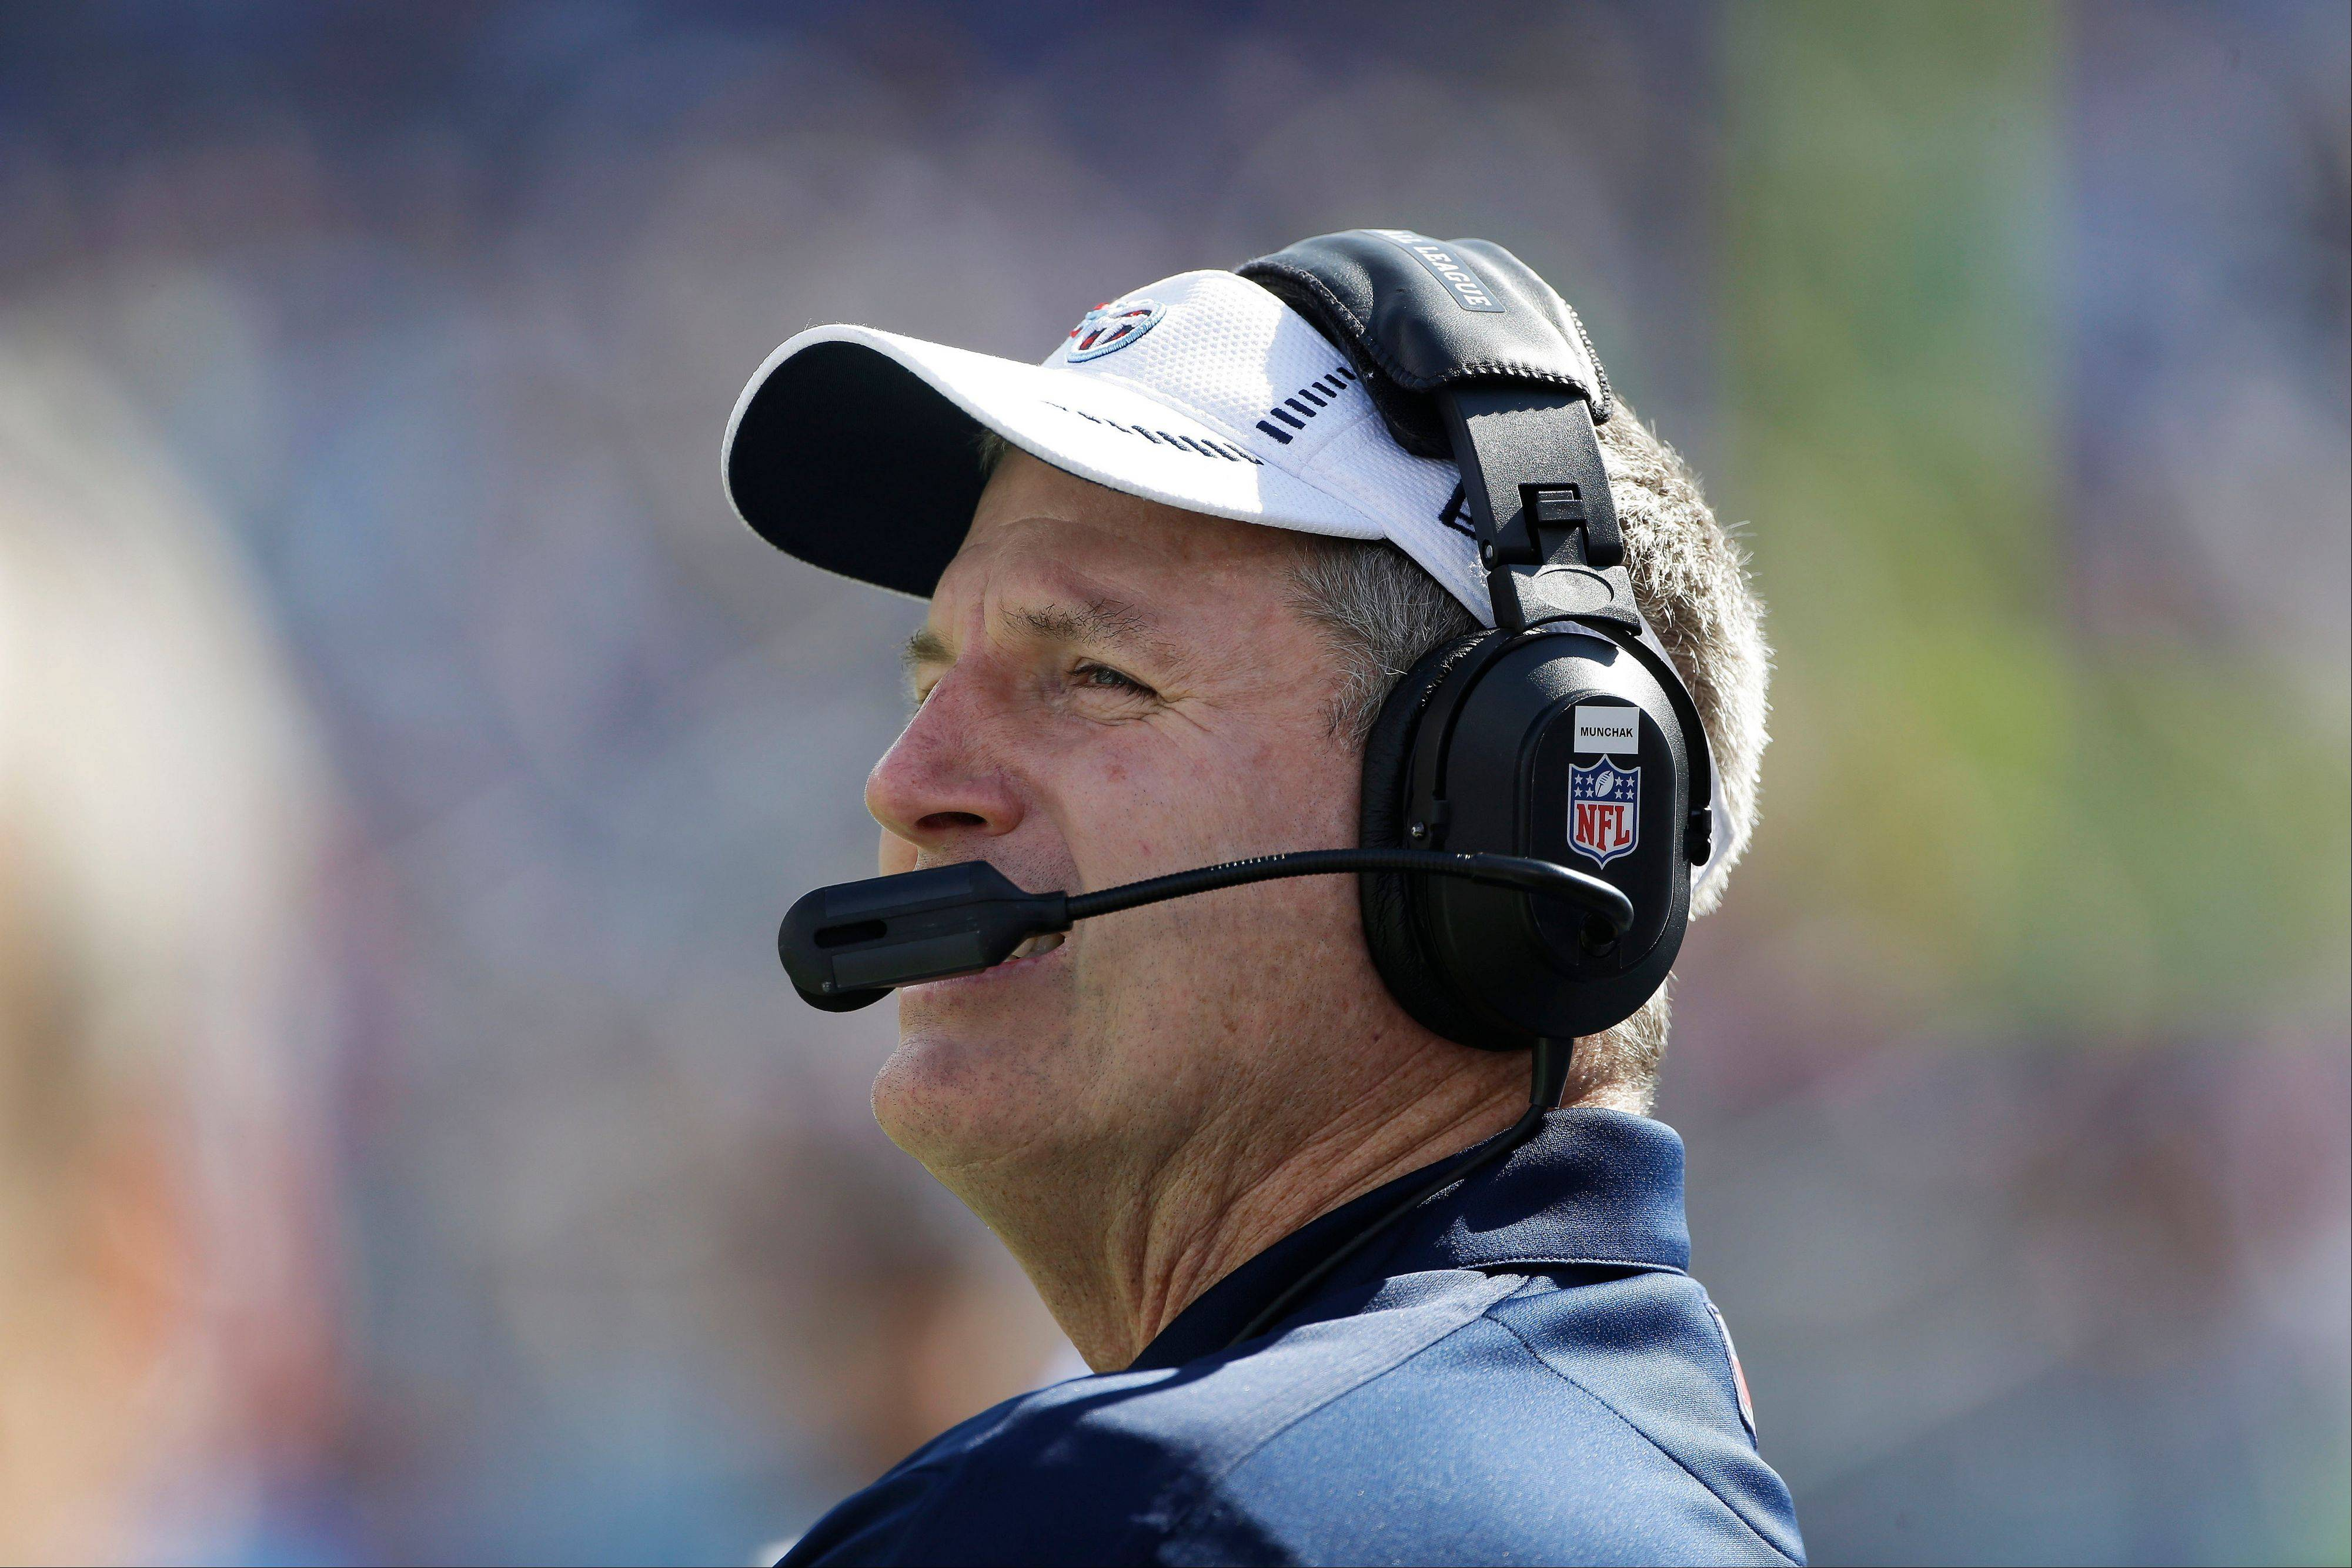 Tennessee Titans head coach Mike Munchak is hoping the Titans' banged up offensive line gets some help from tackle Michael Roos against the Bears this Sunday.